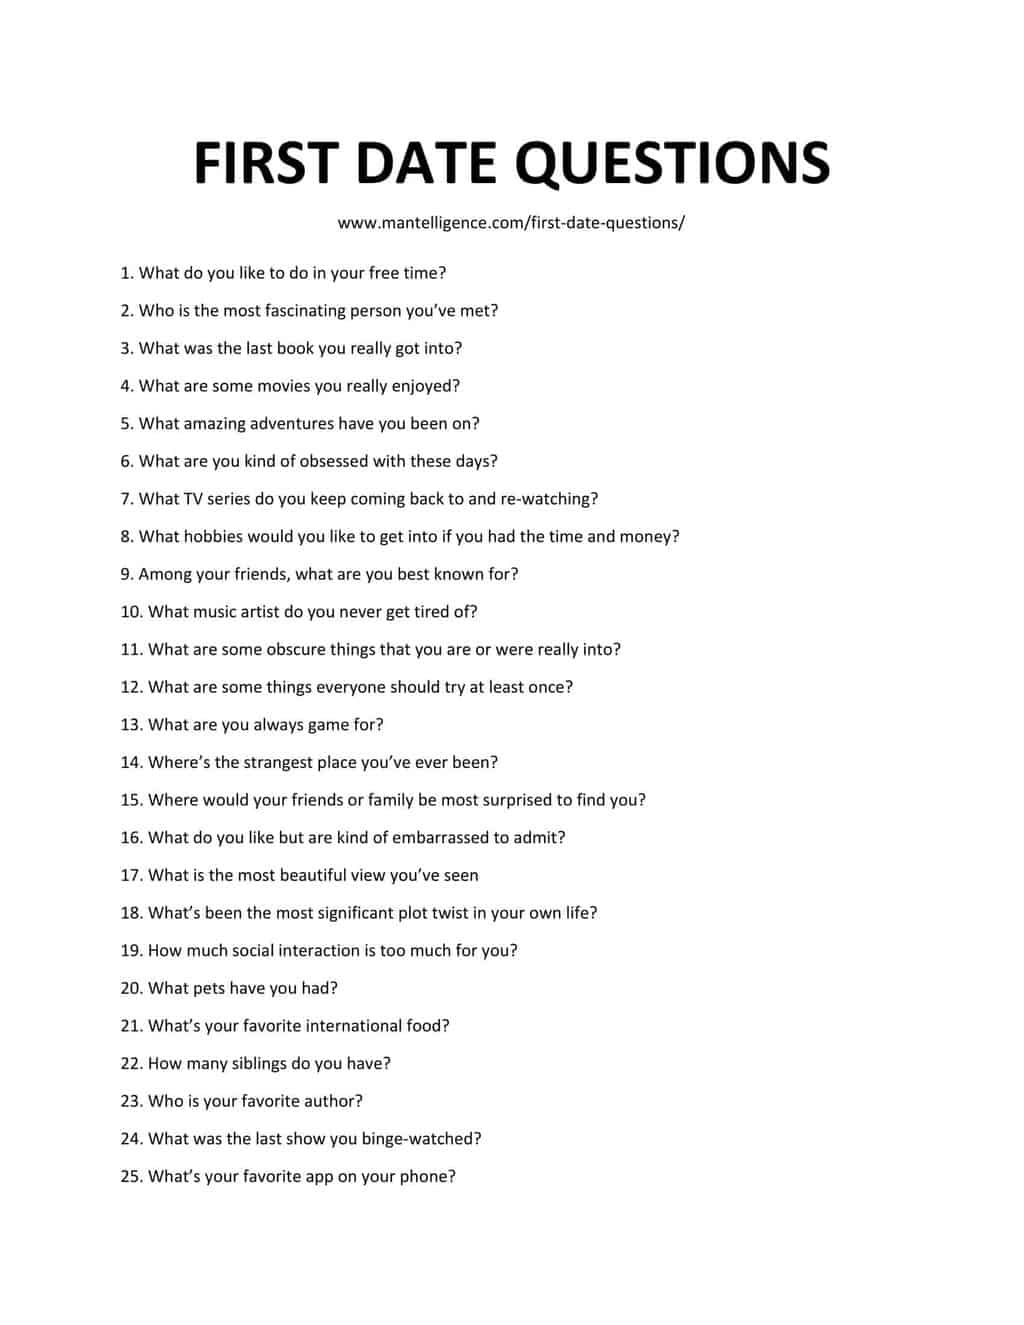 List of First Date Questions